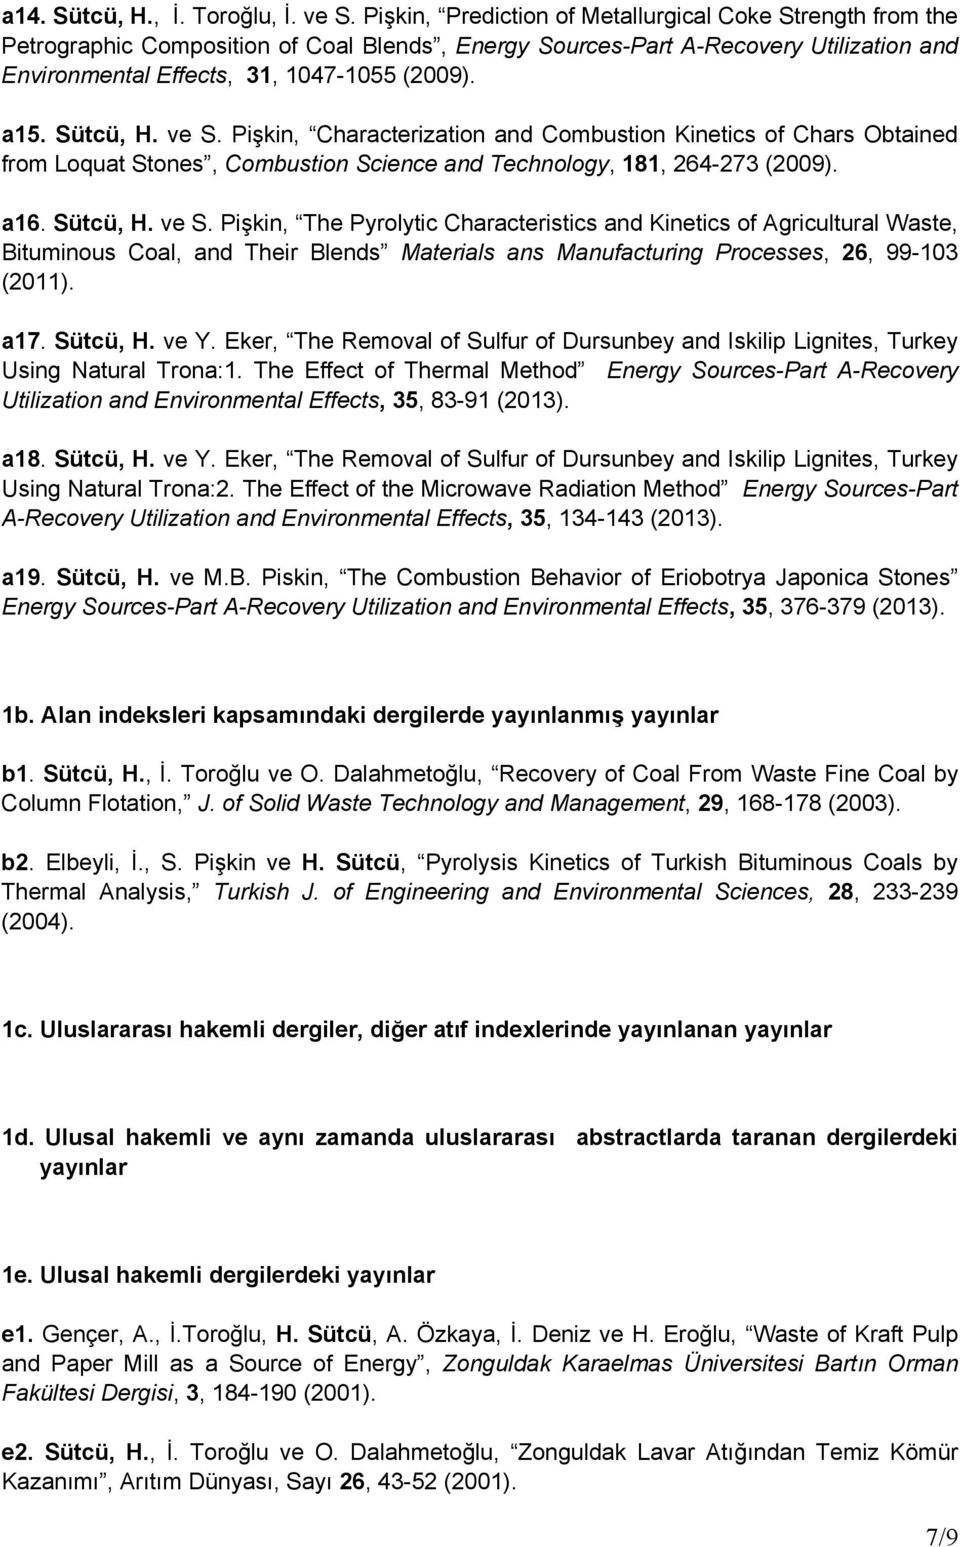 Sütcü, H. ve S. Pişkin, Characterization and Combustion Kinetics of Chars Obtained from Loquat Stones, Combustion Science and Technology, 181, 264-273 (2009). a16. Sütcü, H. ve S. Pişkin, The Pyrolytic Characteristics and Kinetics of Agricultural Waste, Bituminous Coal, and Their Blends Materials ans Manufacturing Processes, 26, 99-103 (2011).